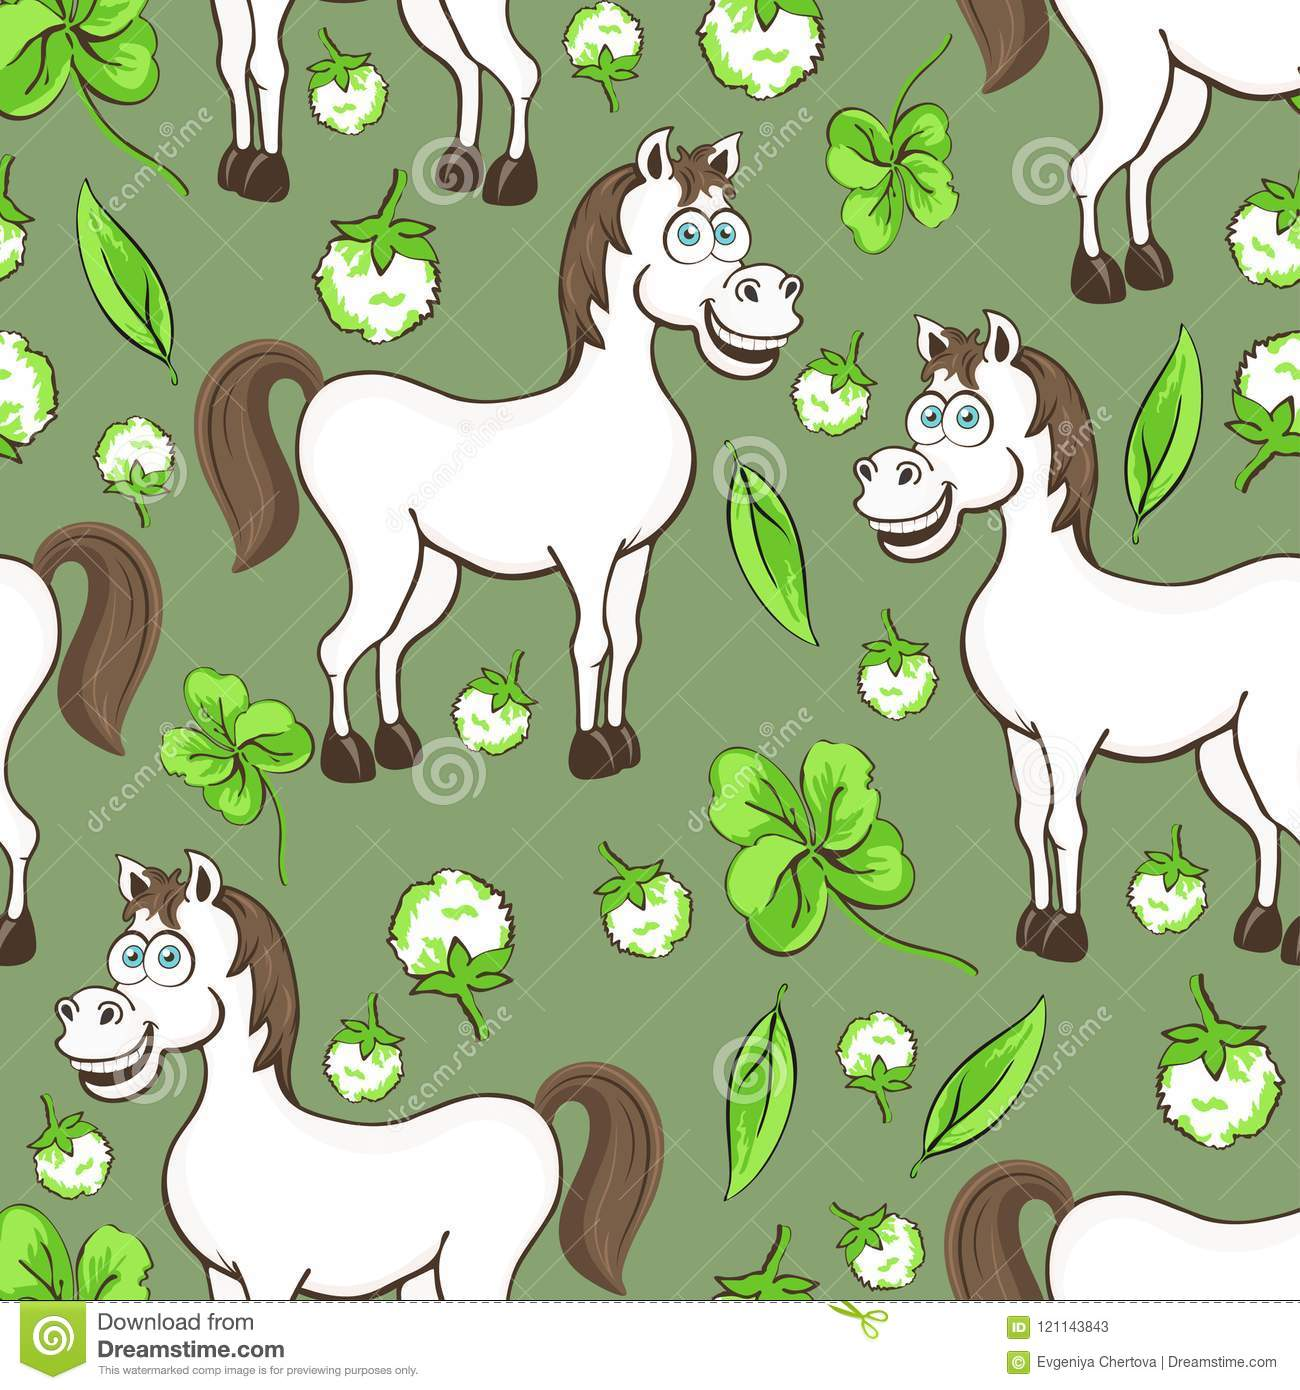 Horse Cartoon Drawing Seamless Pattern Vector Illustration Funny Cute Painted White Horse Flowers And Clover Leaves On Green Bac Stock Vector Illustration Of Meadow Cheerful 121143843